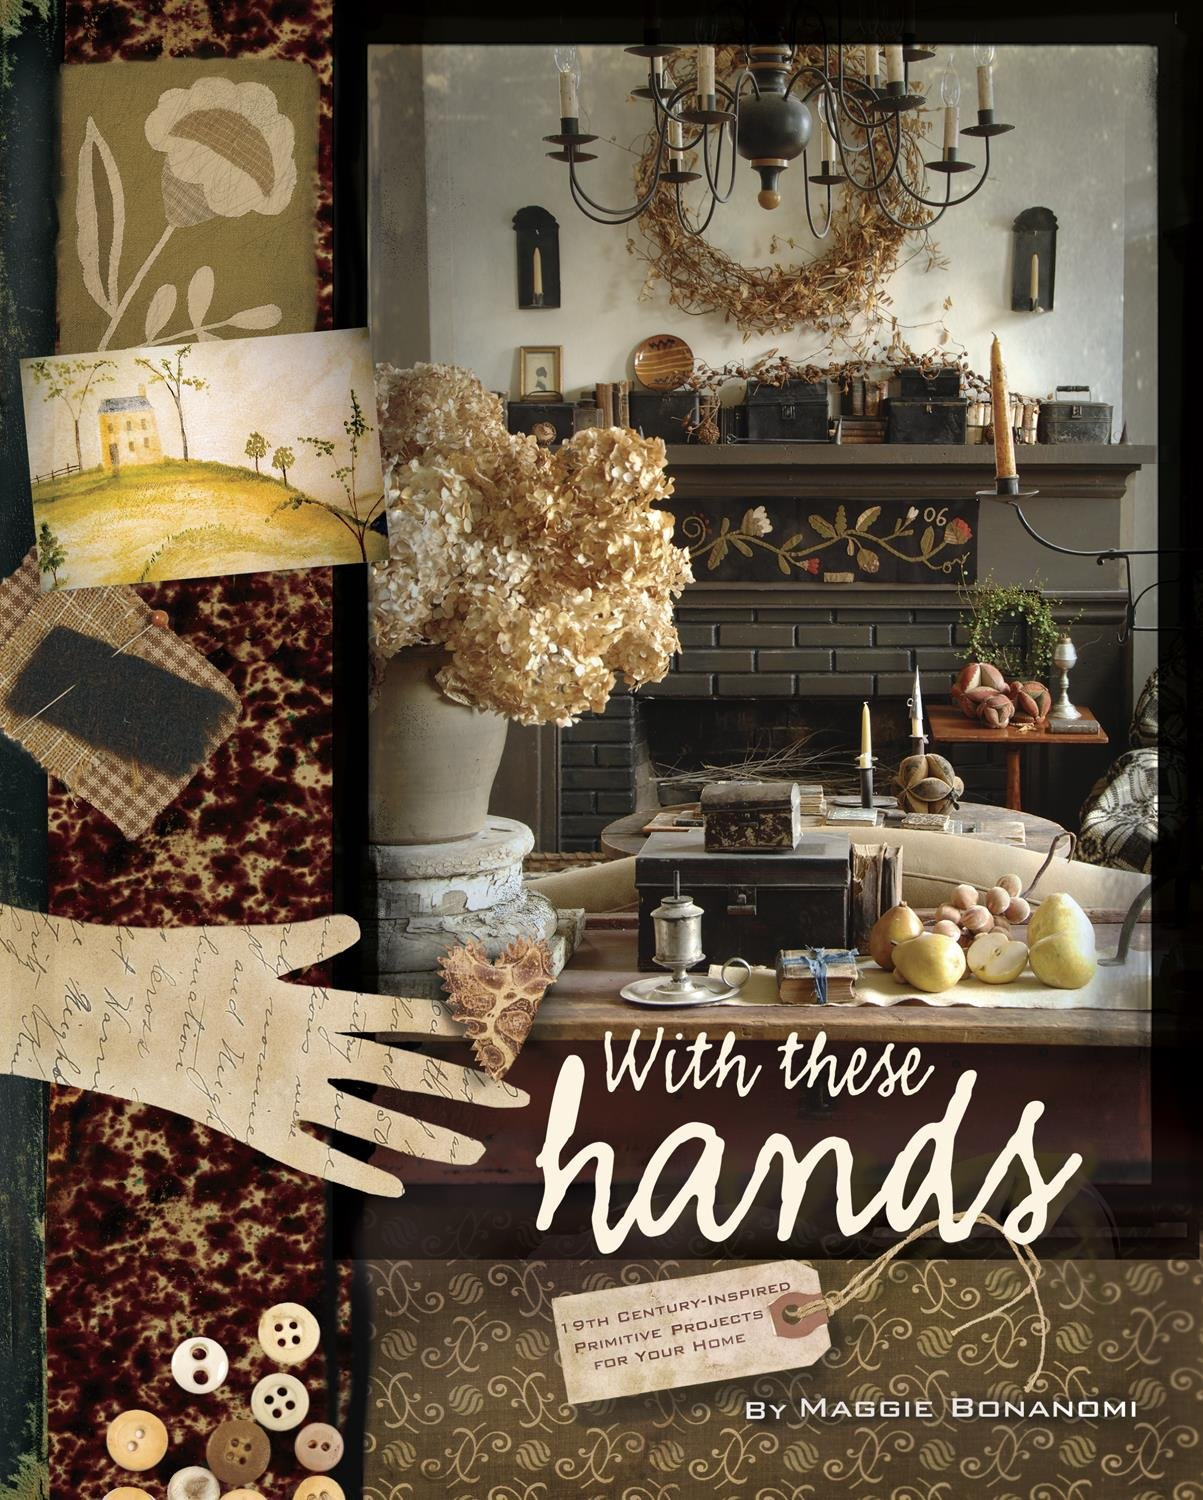 Download With These Hands: 19th Century Inspired Primitive Projects for Your Home pdf